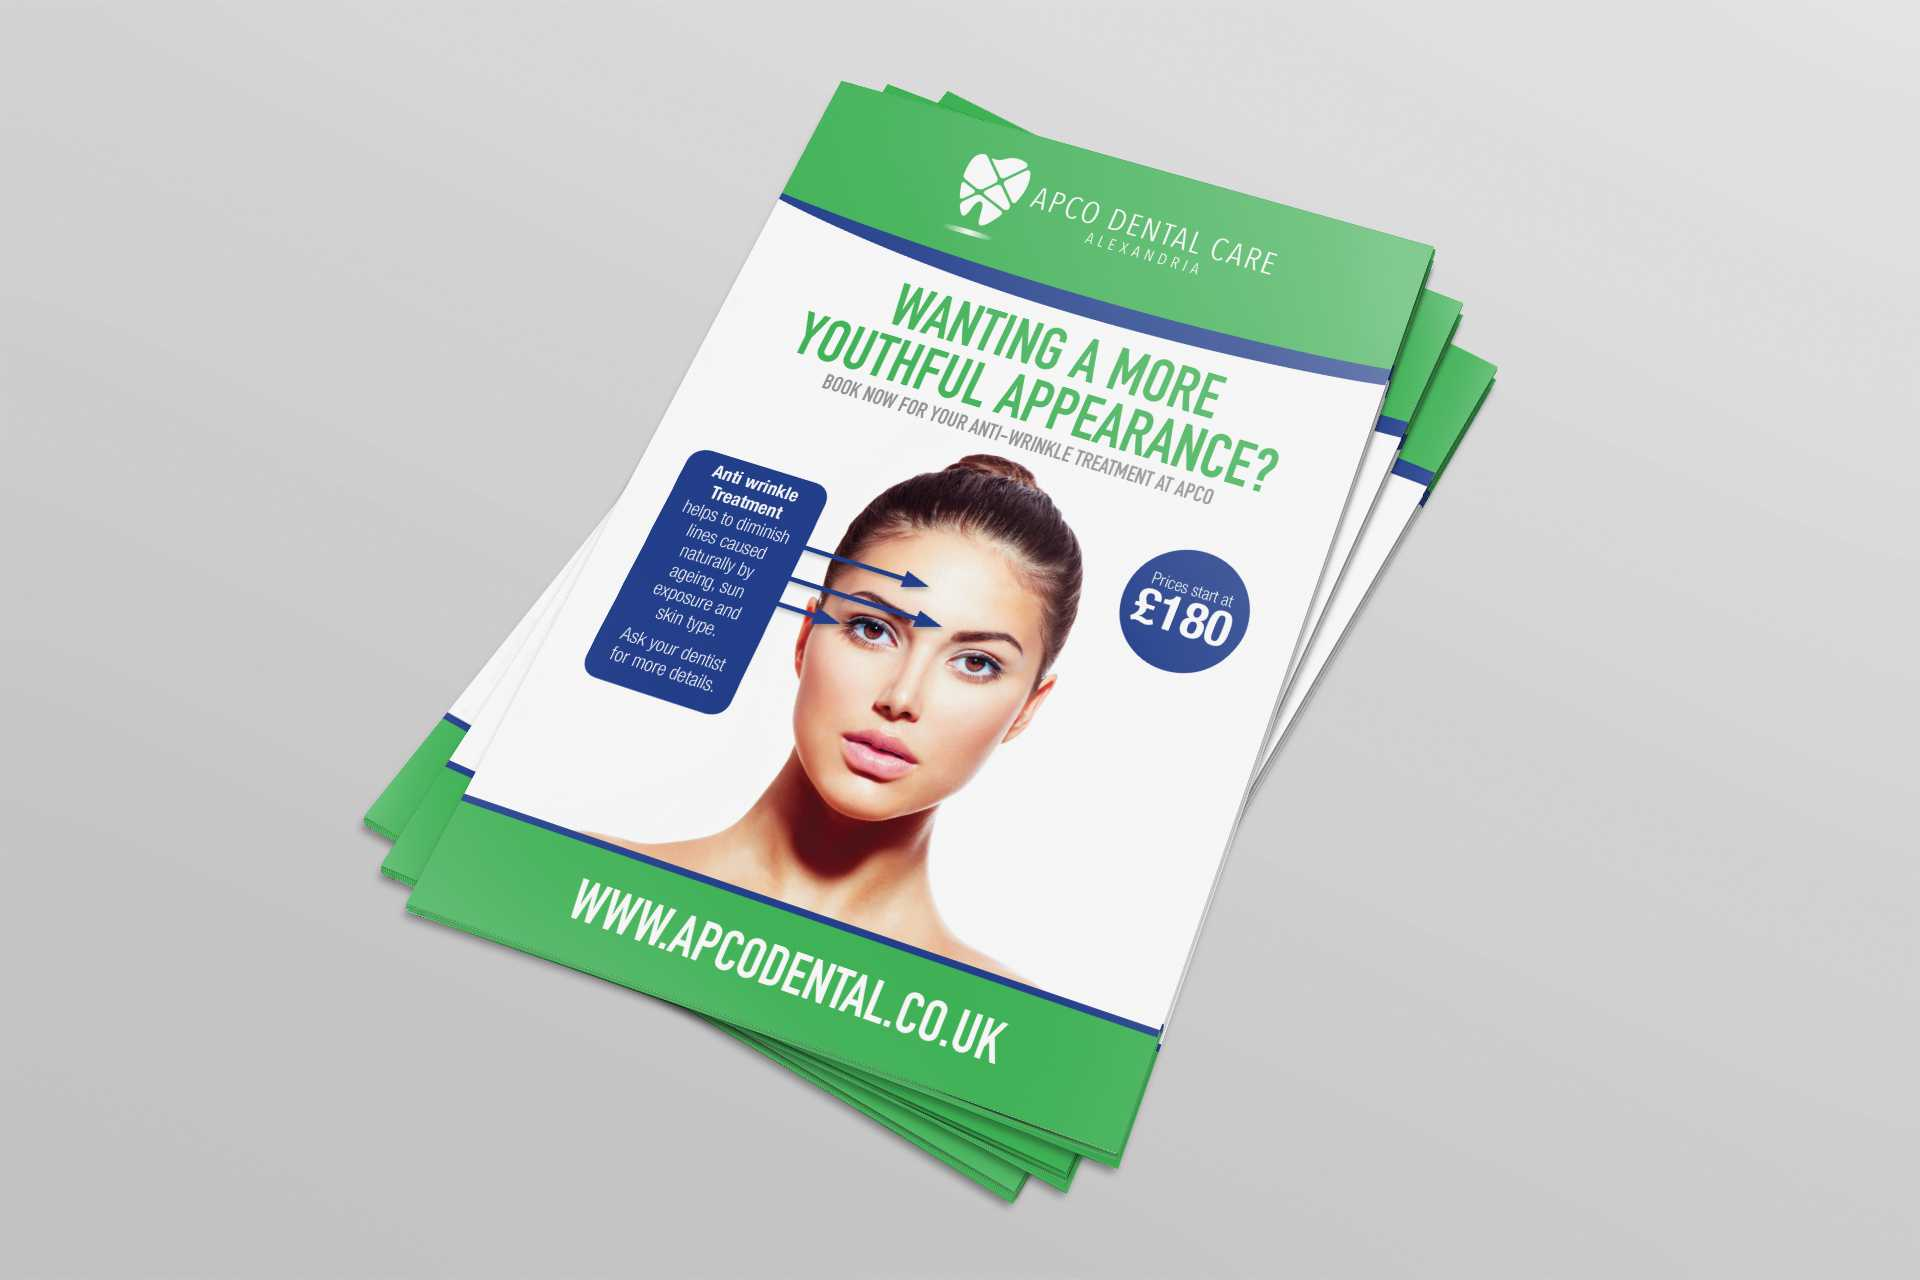 Flyer-design-Glasgow-Edinburgh-West-Lothian-26.jpg